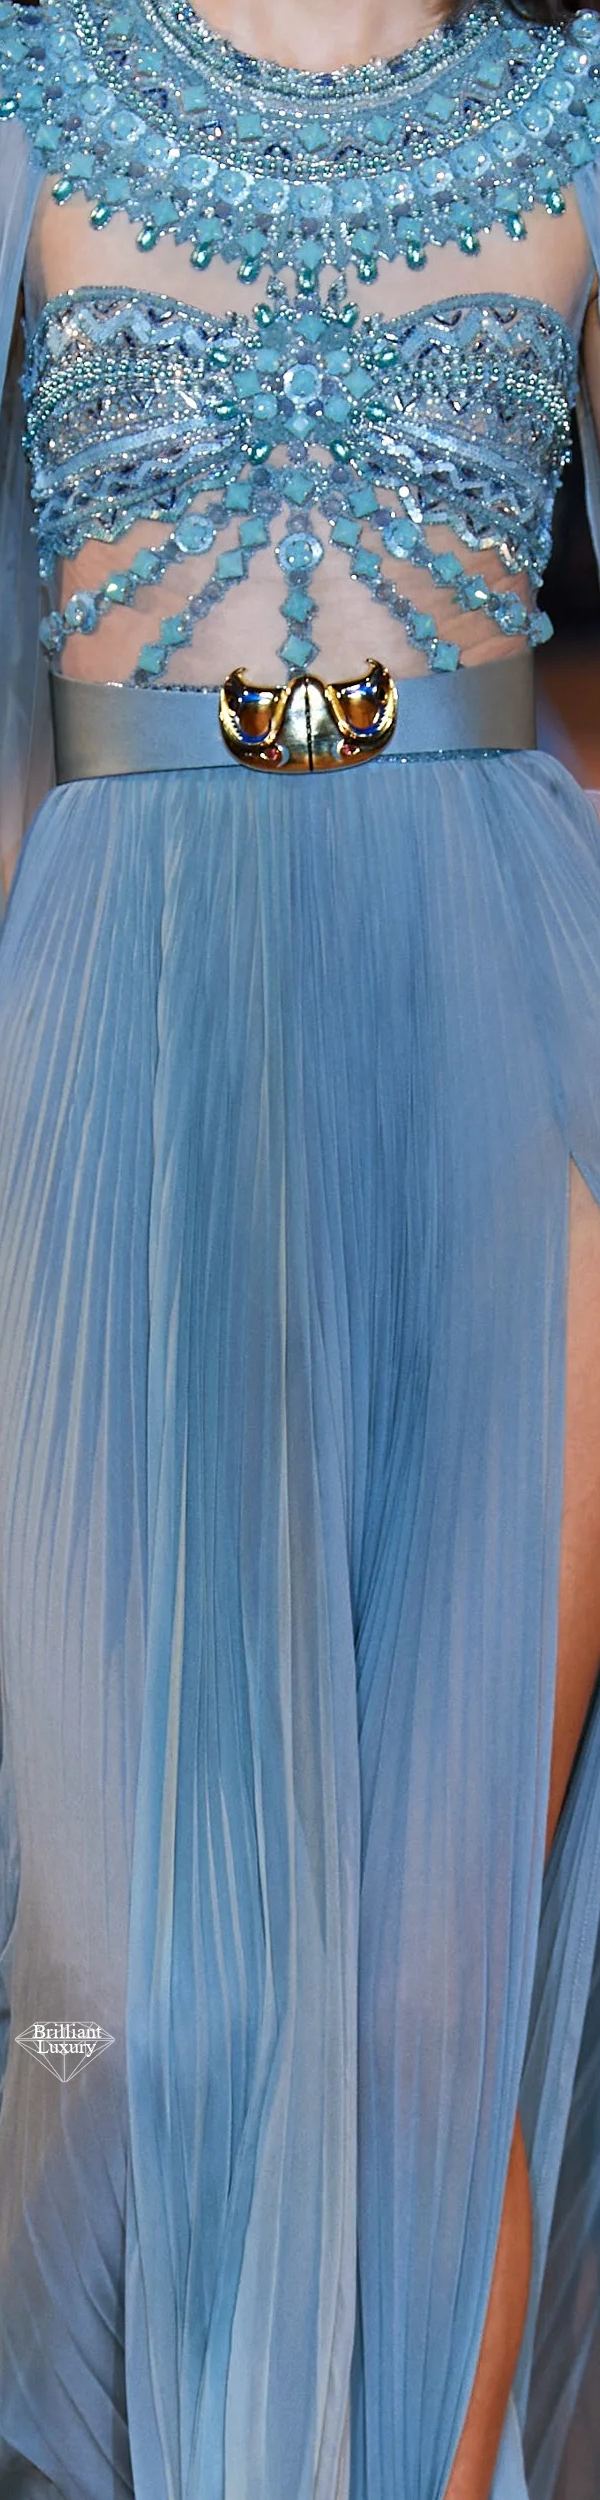 Zuhair Murad Spring 2020 Couture Egyptian Embroidered Light Blue Gown #fashion